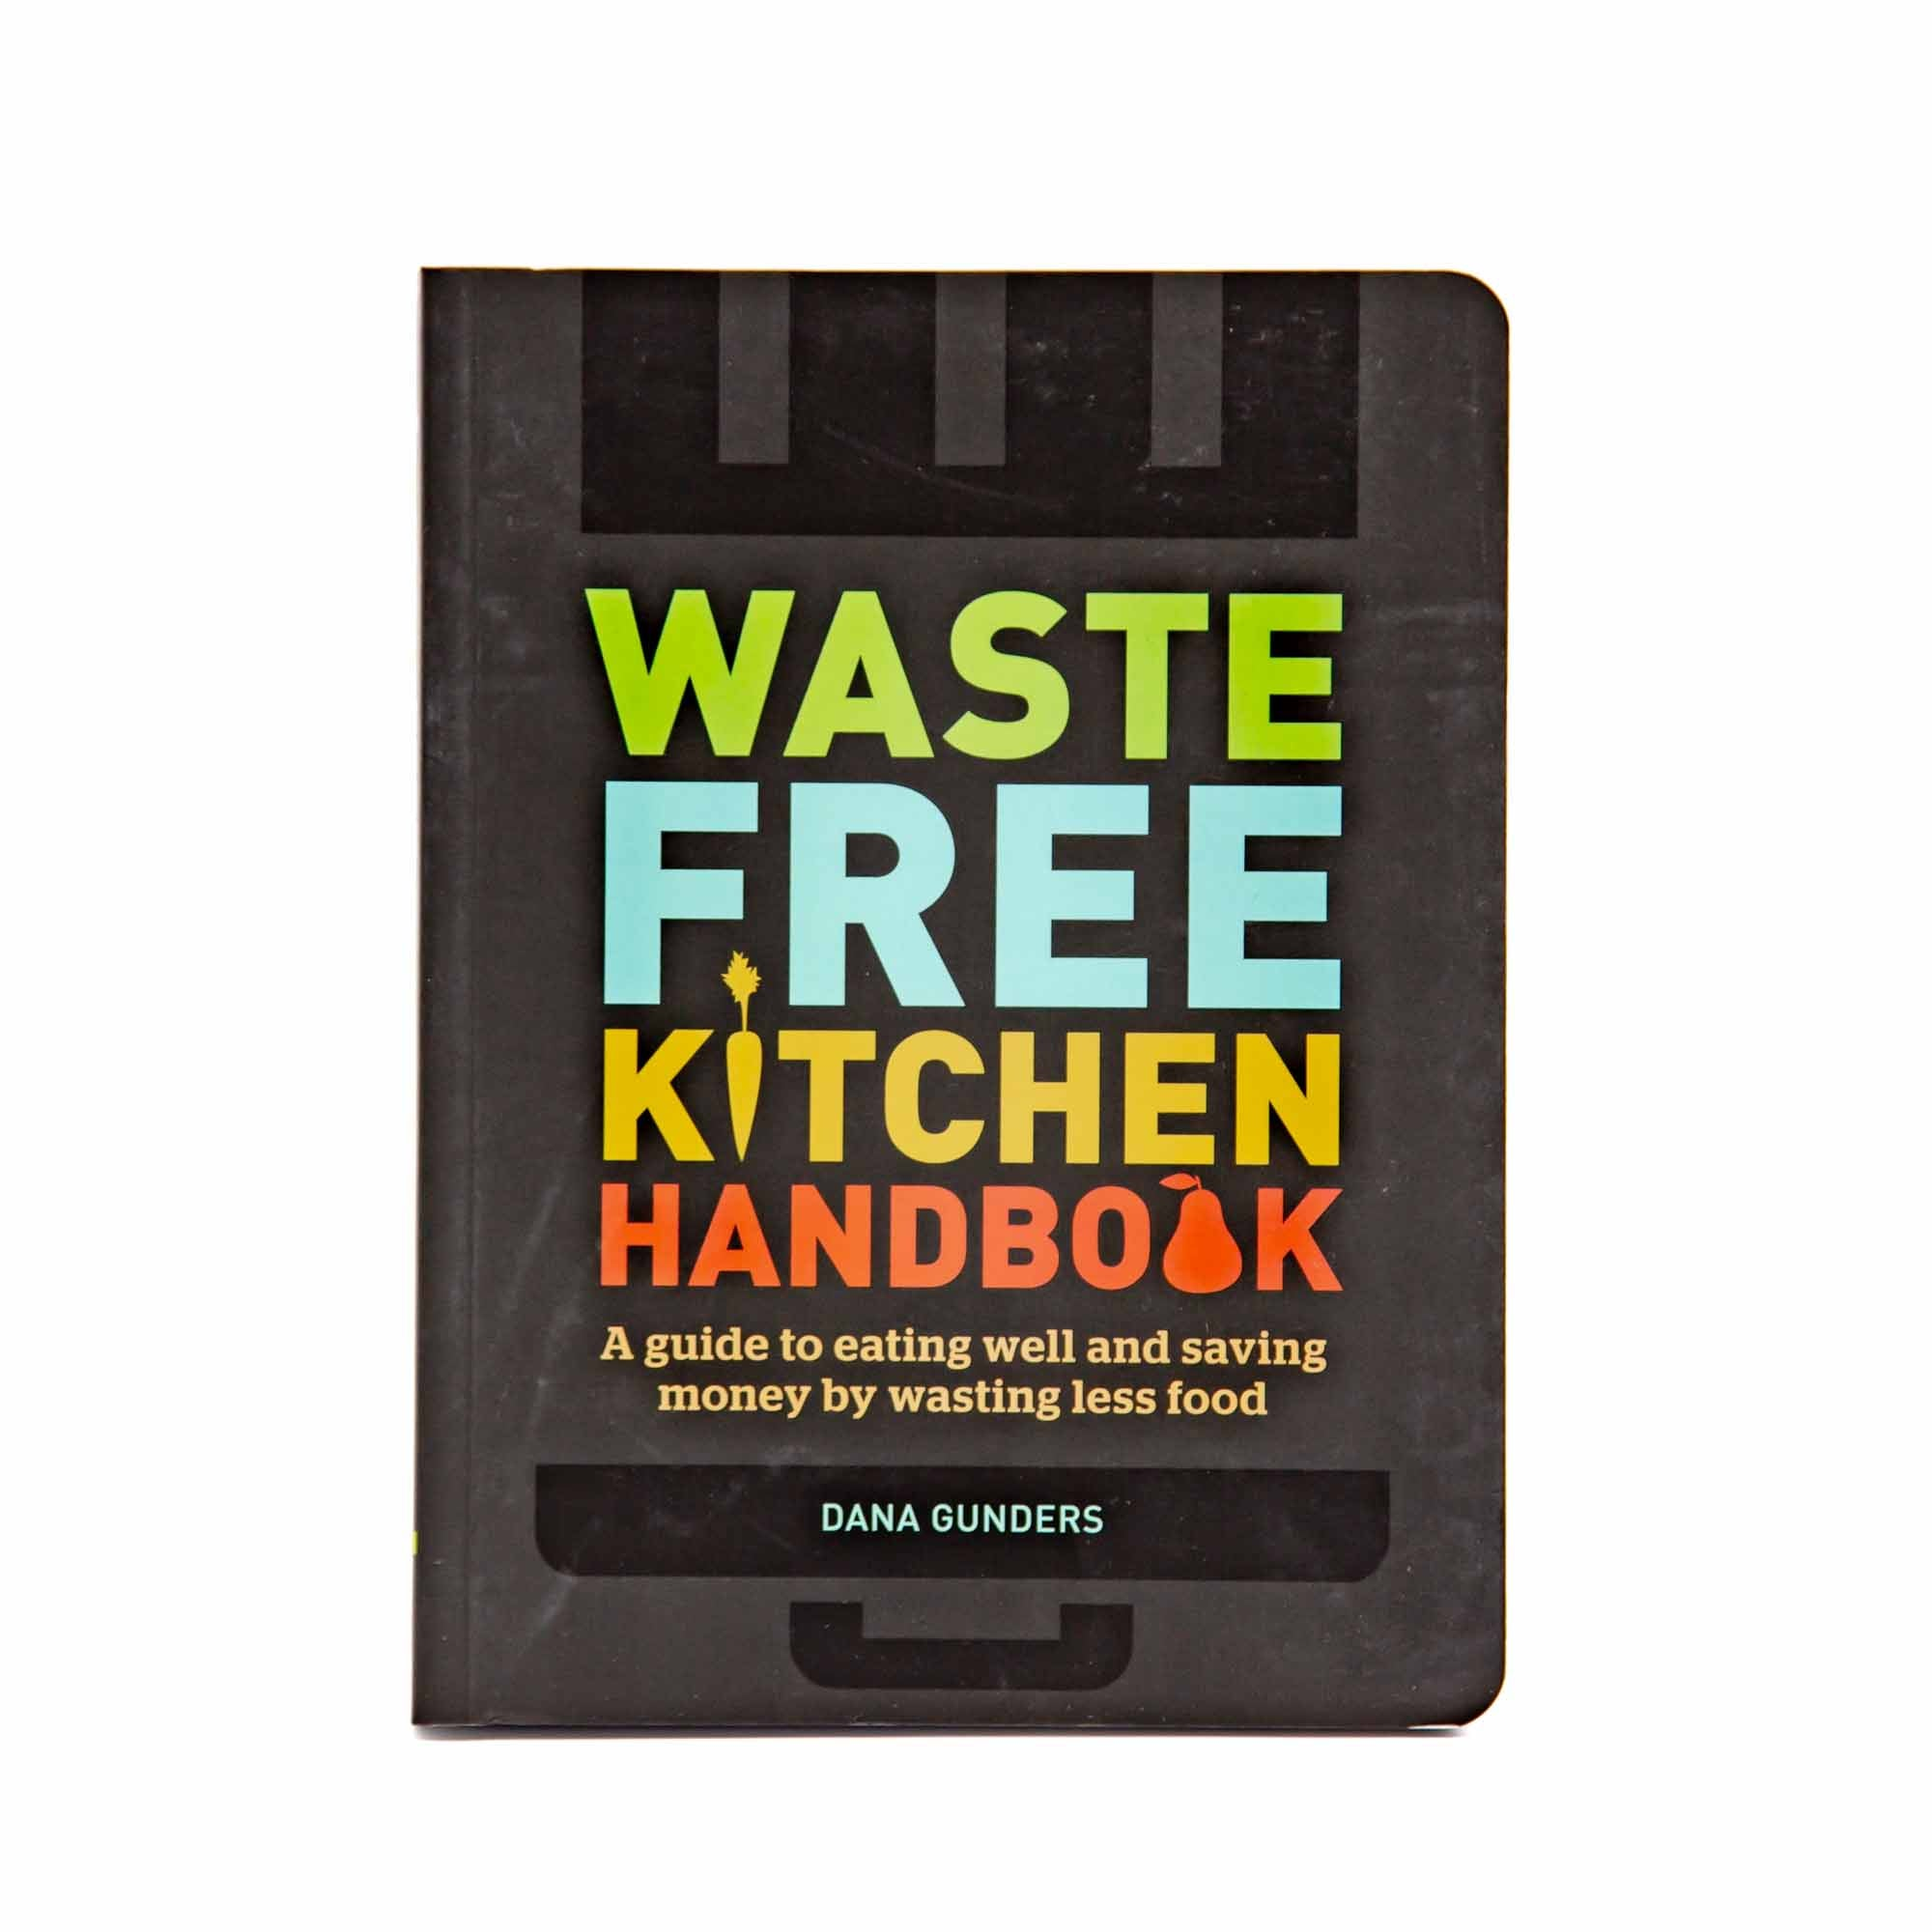 Waste-Free Kitchen Handbook: A Guide to Eating Well and Saving Money by Wasting Less Food - Mortise And Tenon